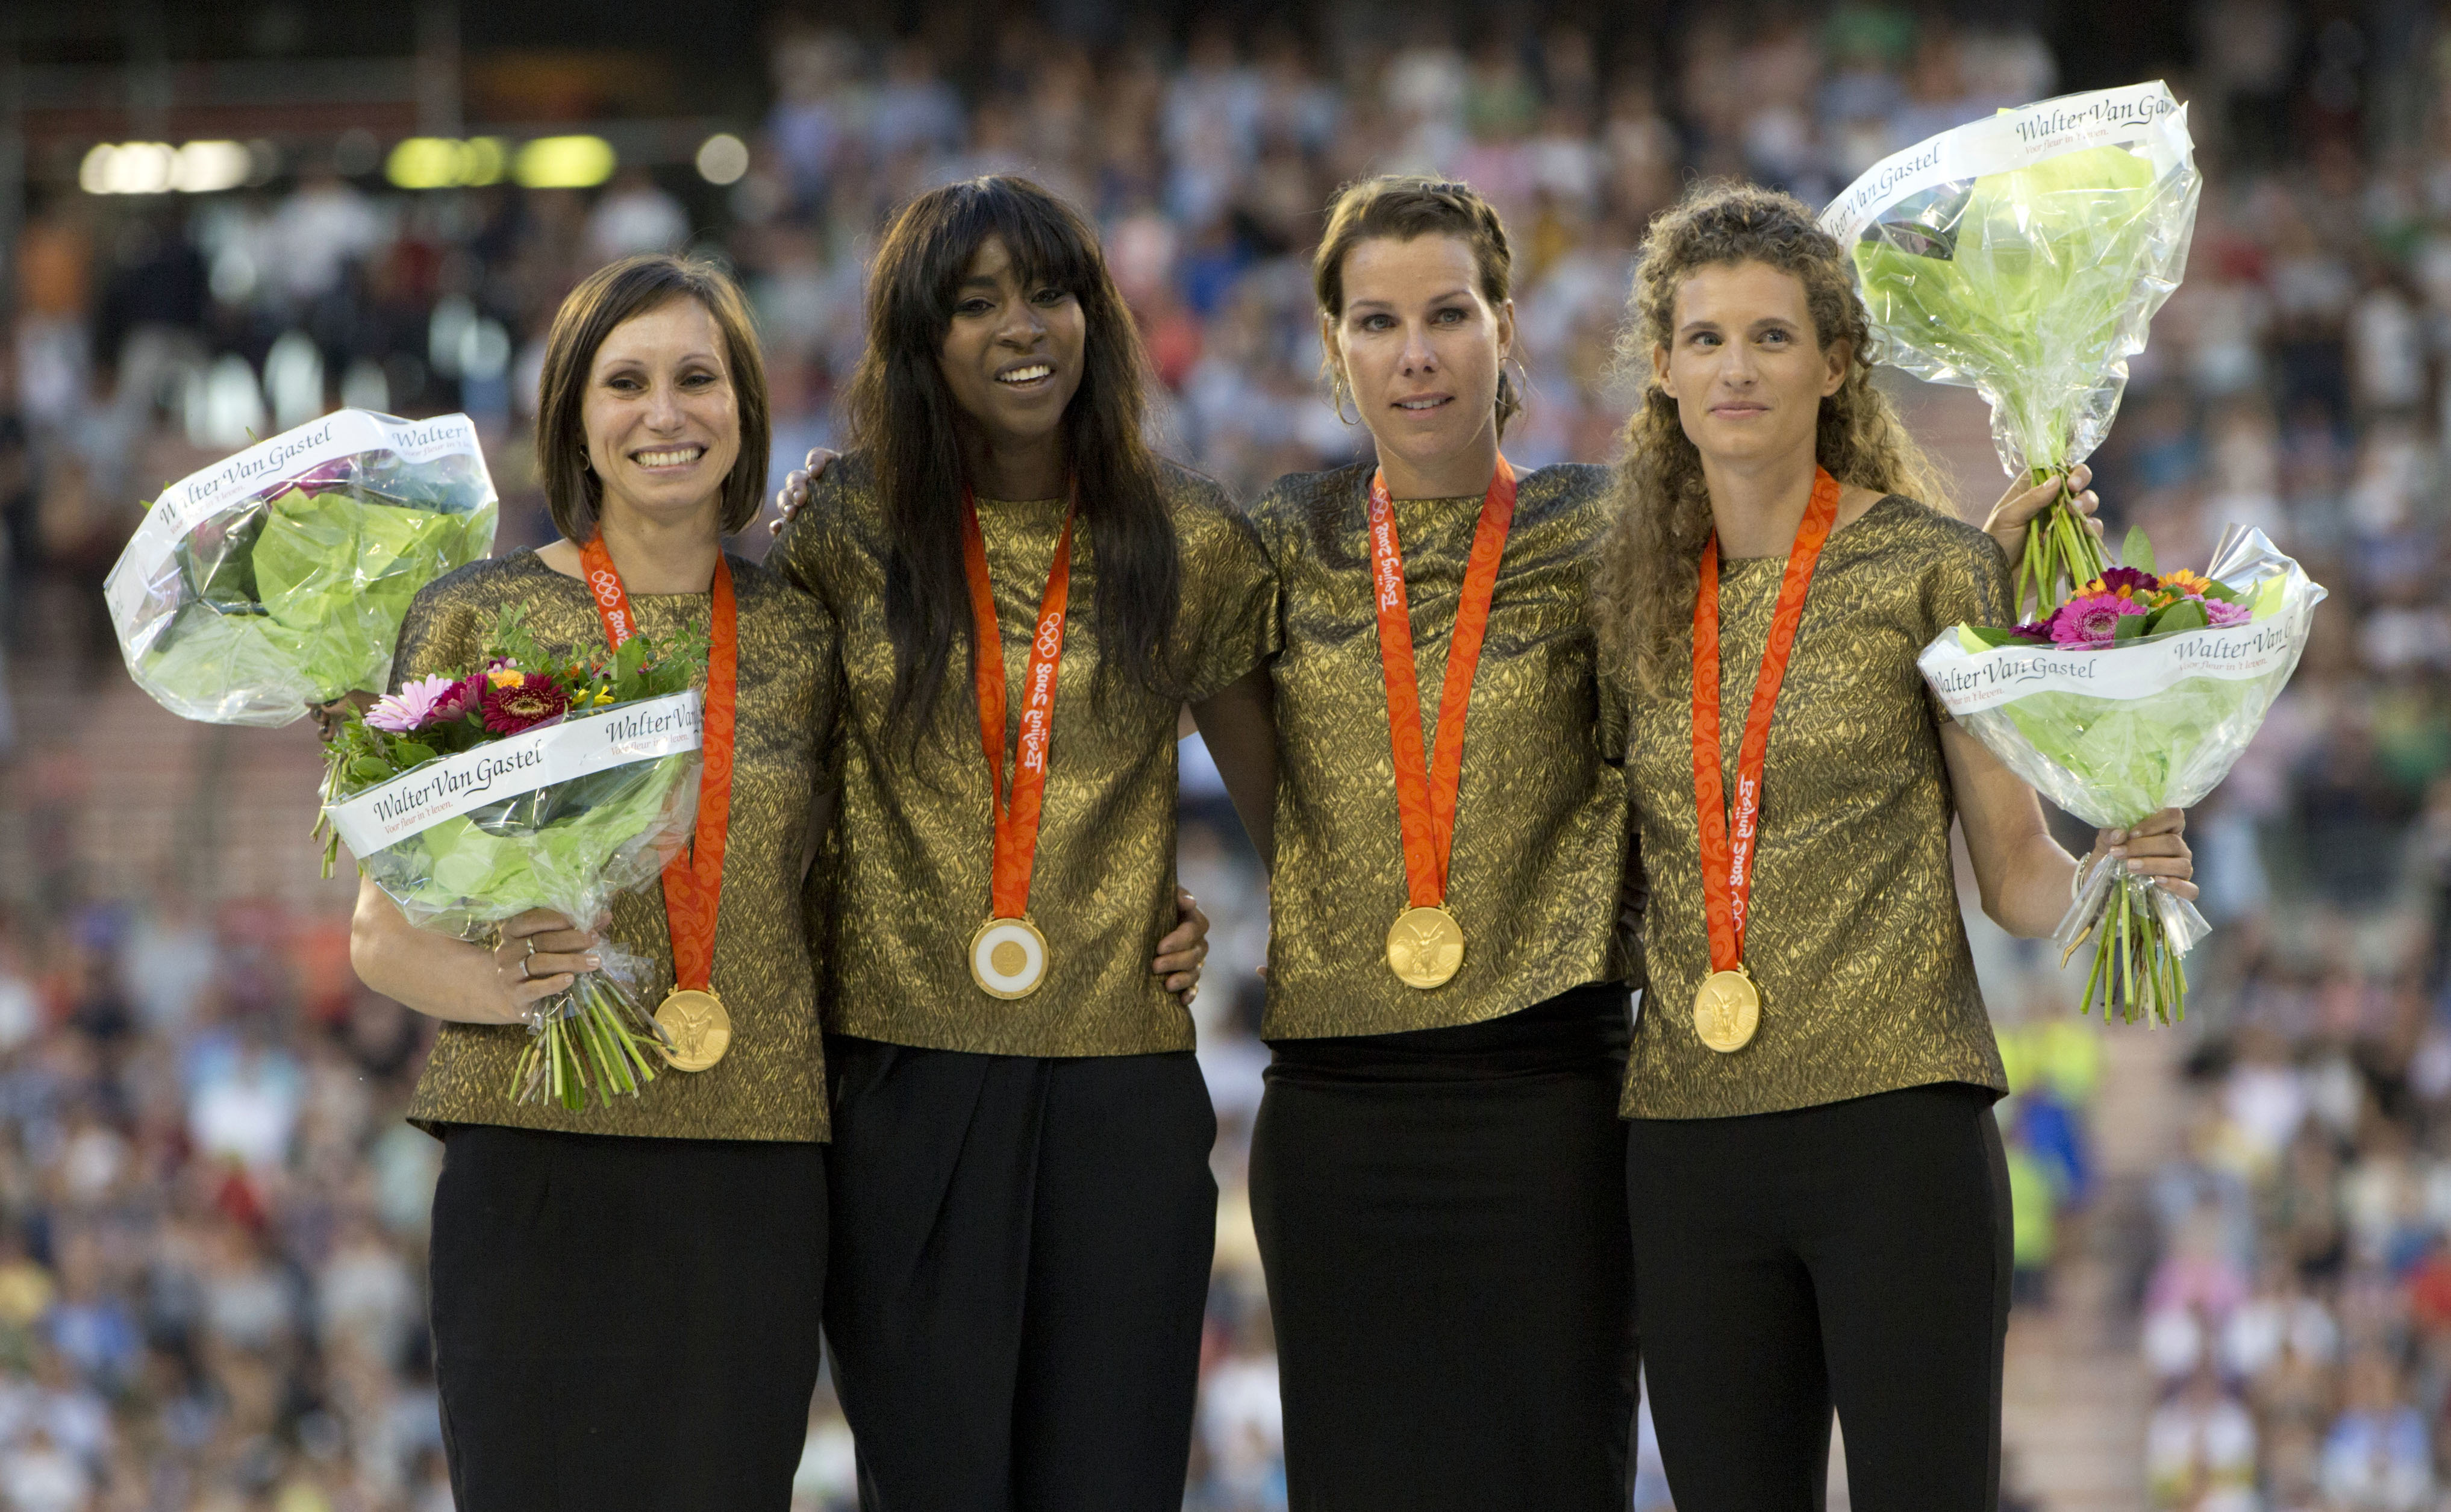 FILE - In this Sept. 9, 2016, file photo, Belgian runners Kim Gevaert, Elodie Ouedraogo, Olivia Borlee and Hanna Marien stand on the podium after receiving the gold medal for the Women's 4 x 100 meters relay at the 2008 Beijing Olympics during the Diamond